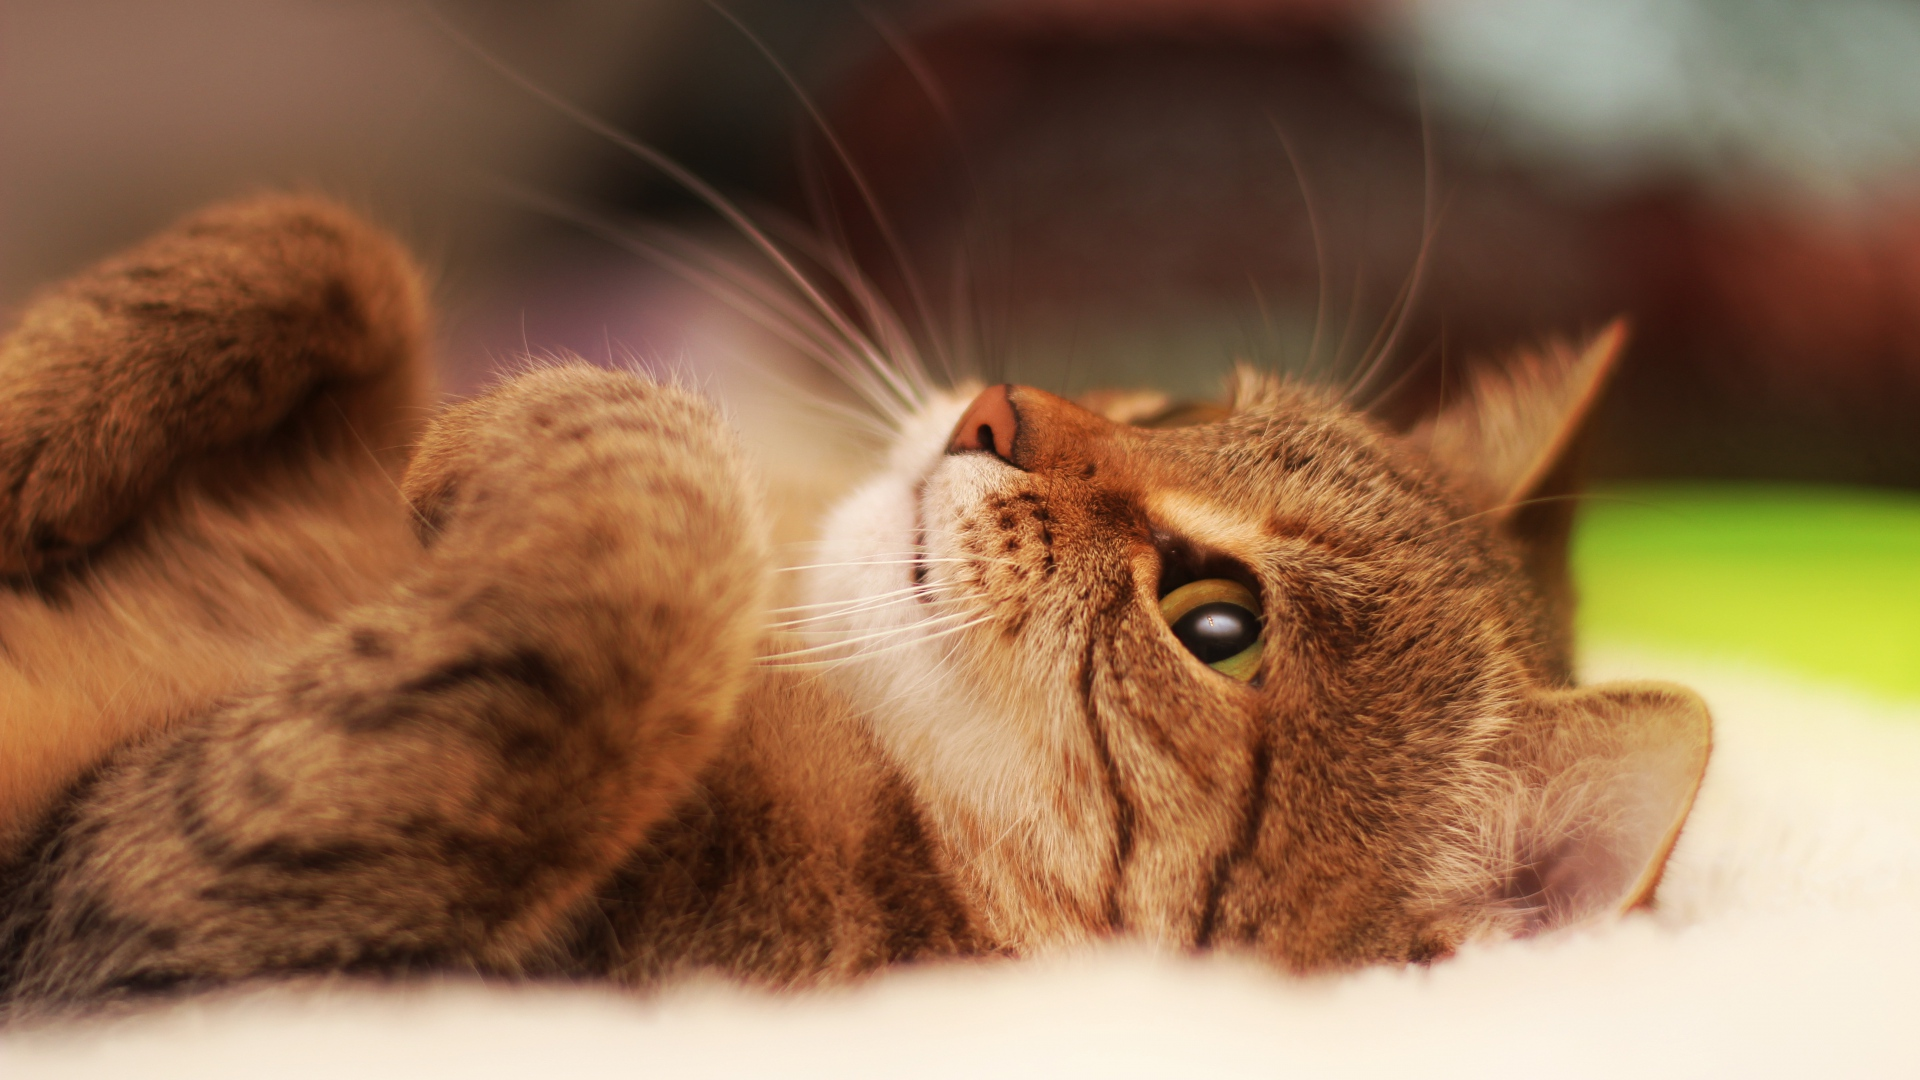 Cute Cat Wallpapers Hd Resolution Iphone For Android Tumpah